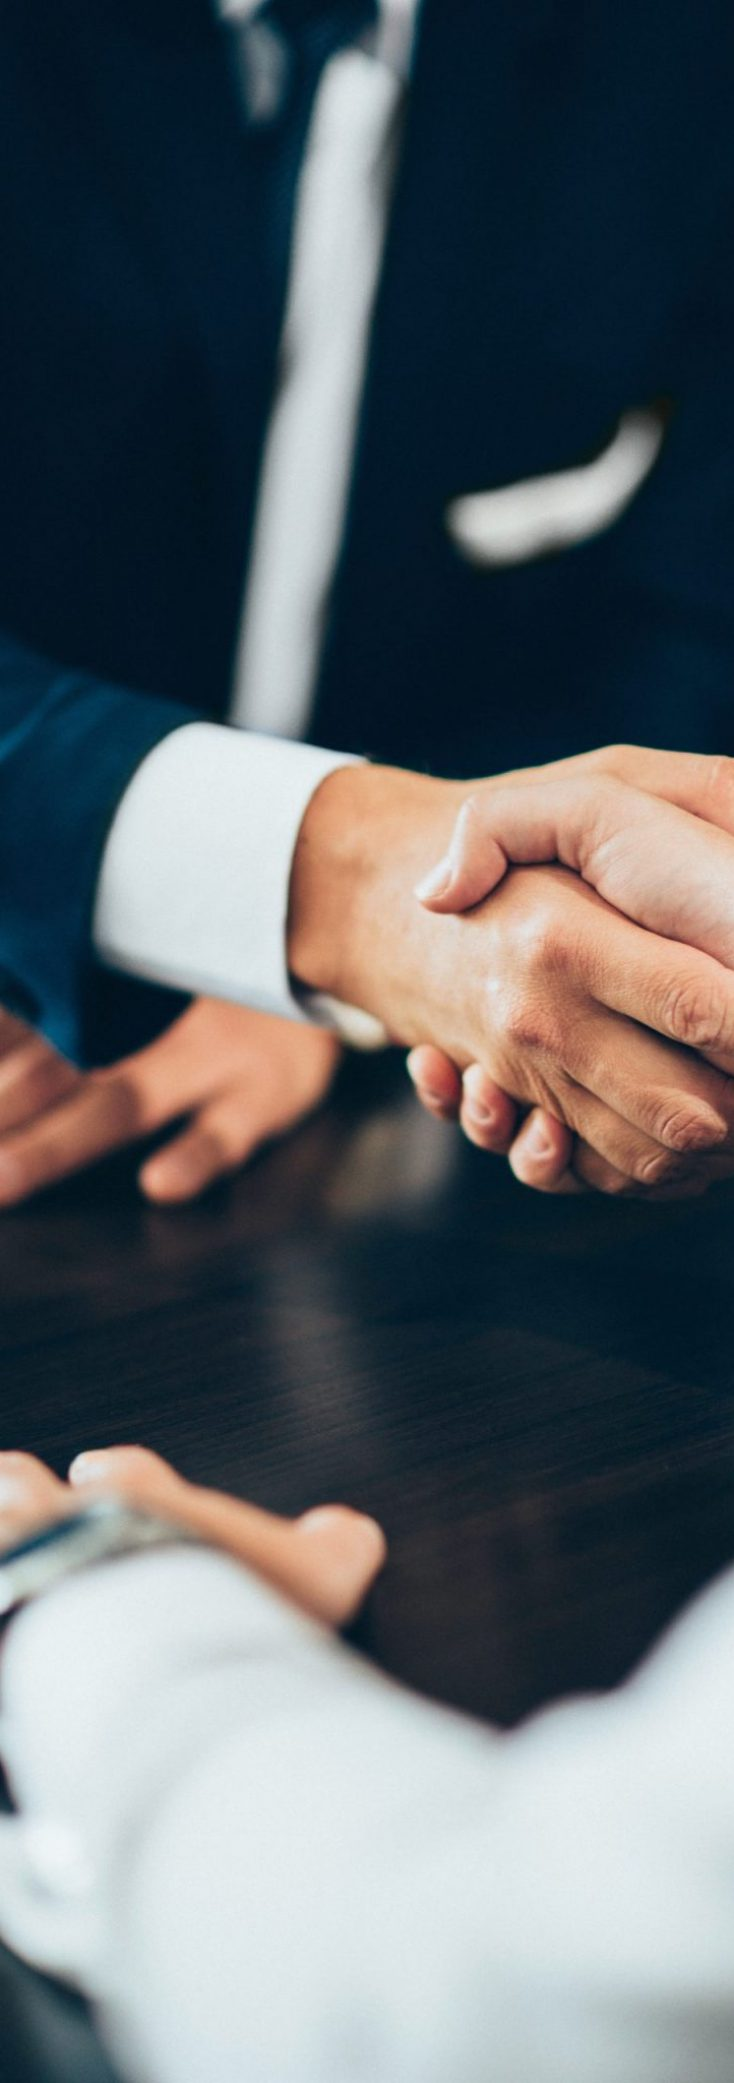 Business people reaching agreement, shaking hands. Toned image, focus on handsake